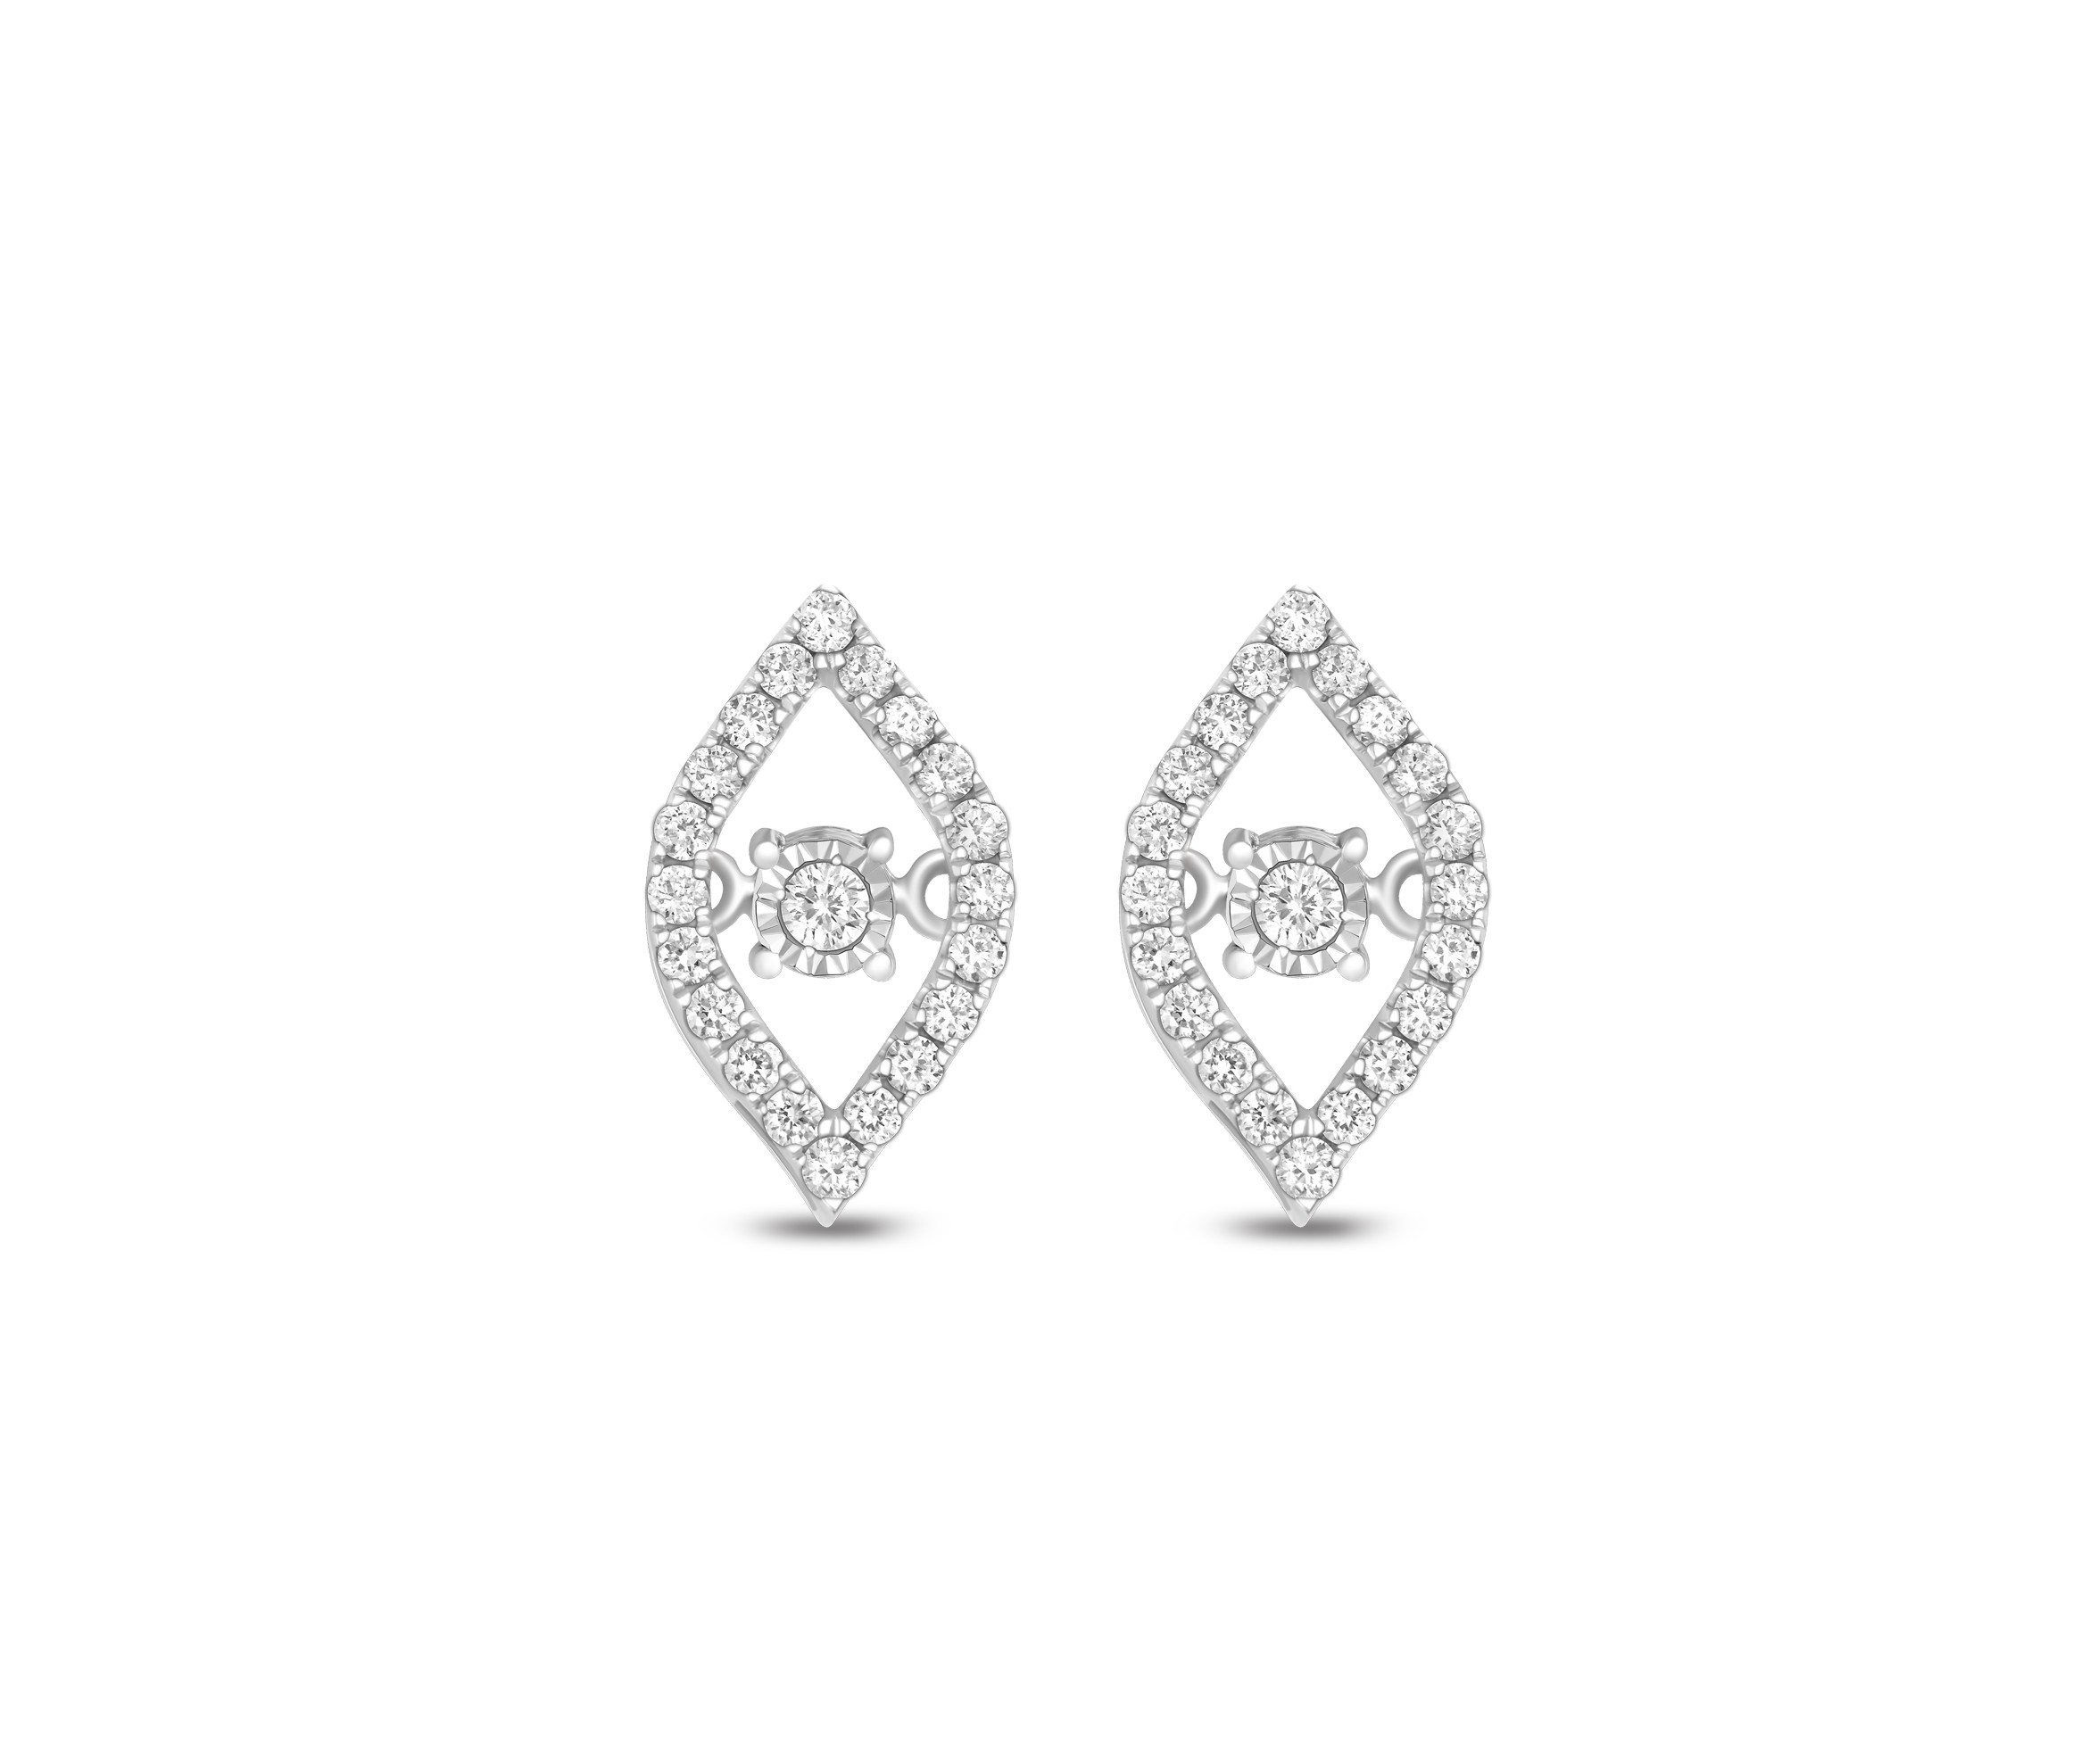 18K WHITE GOLD HEART BEATS EARRING KNG102WE